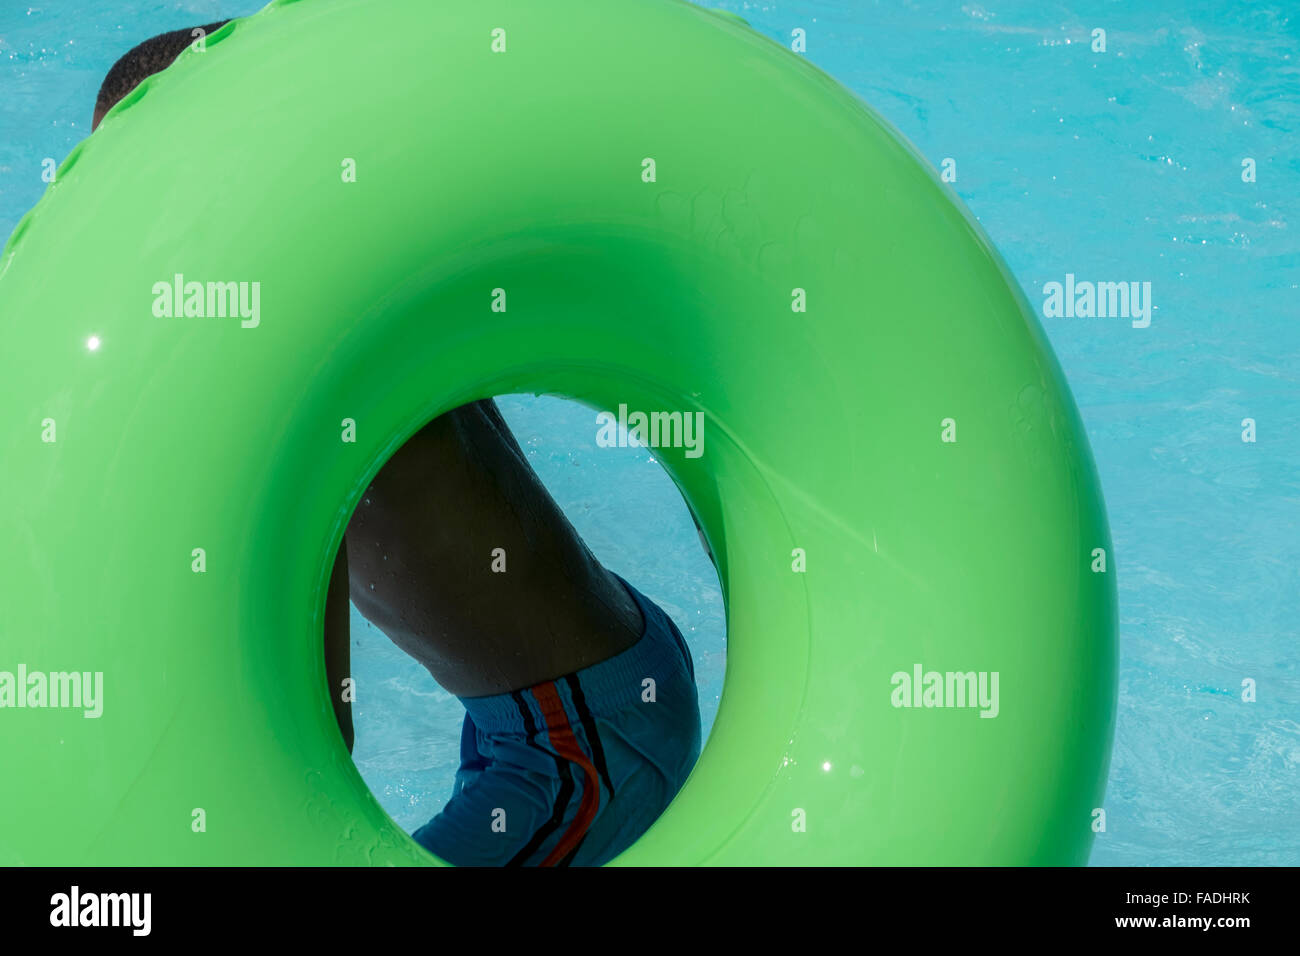 Young boy with a green inner tube at a swimming pool in the summer - Stock Image